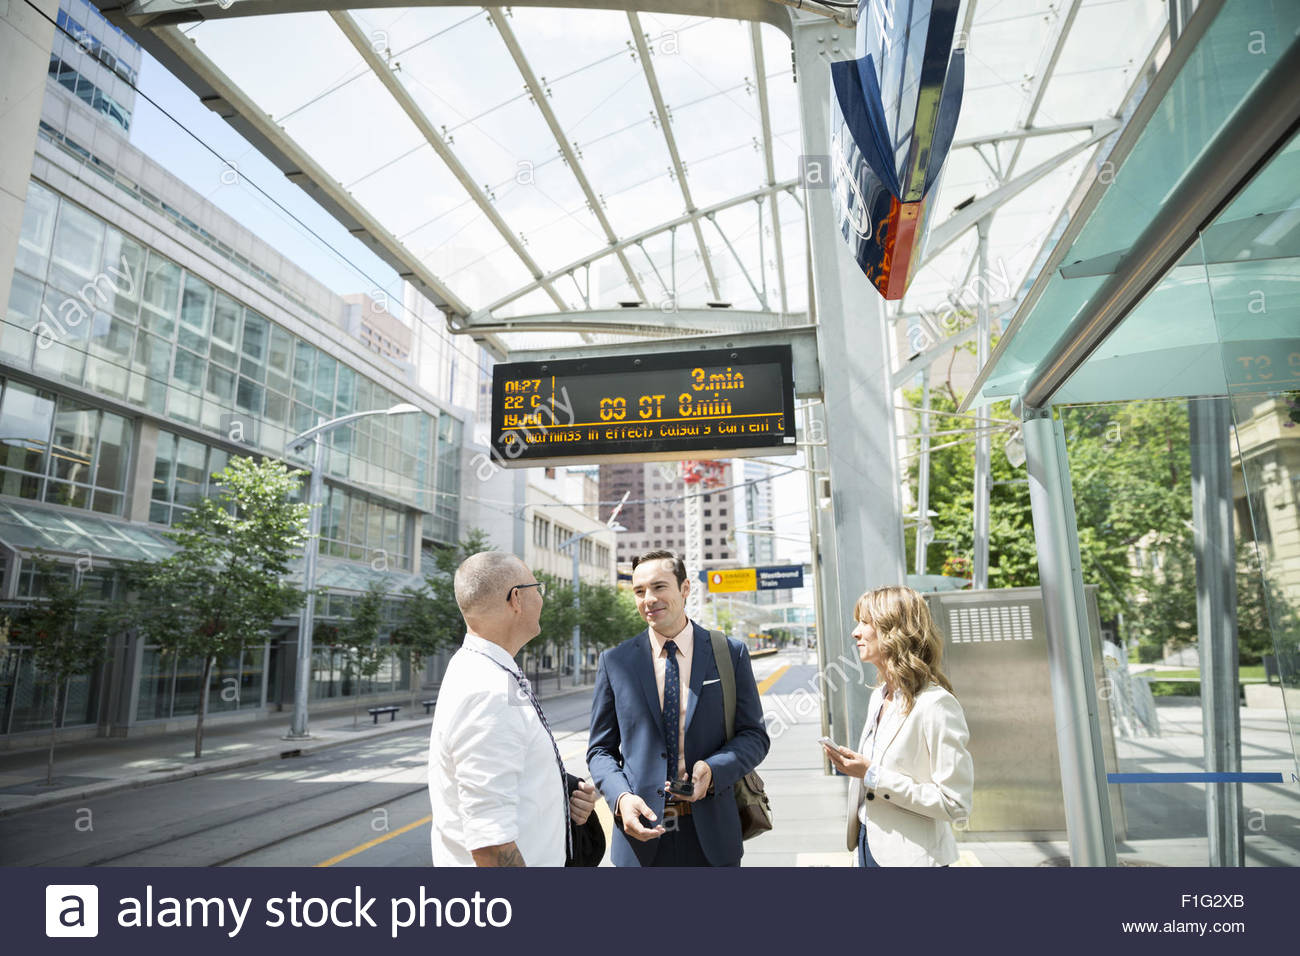 Business people talking on train station platform - Stock Image